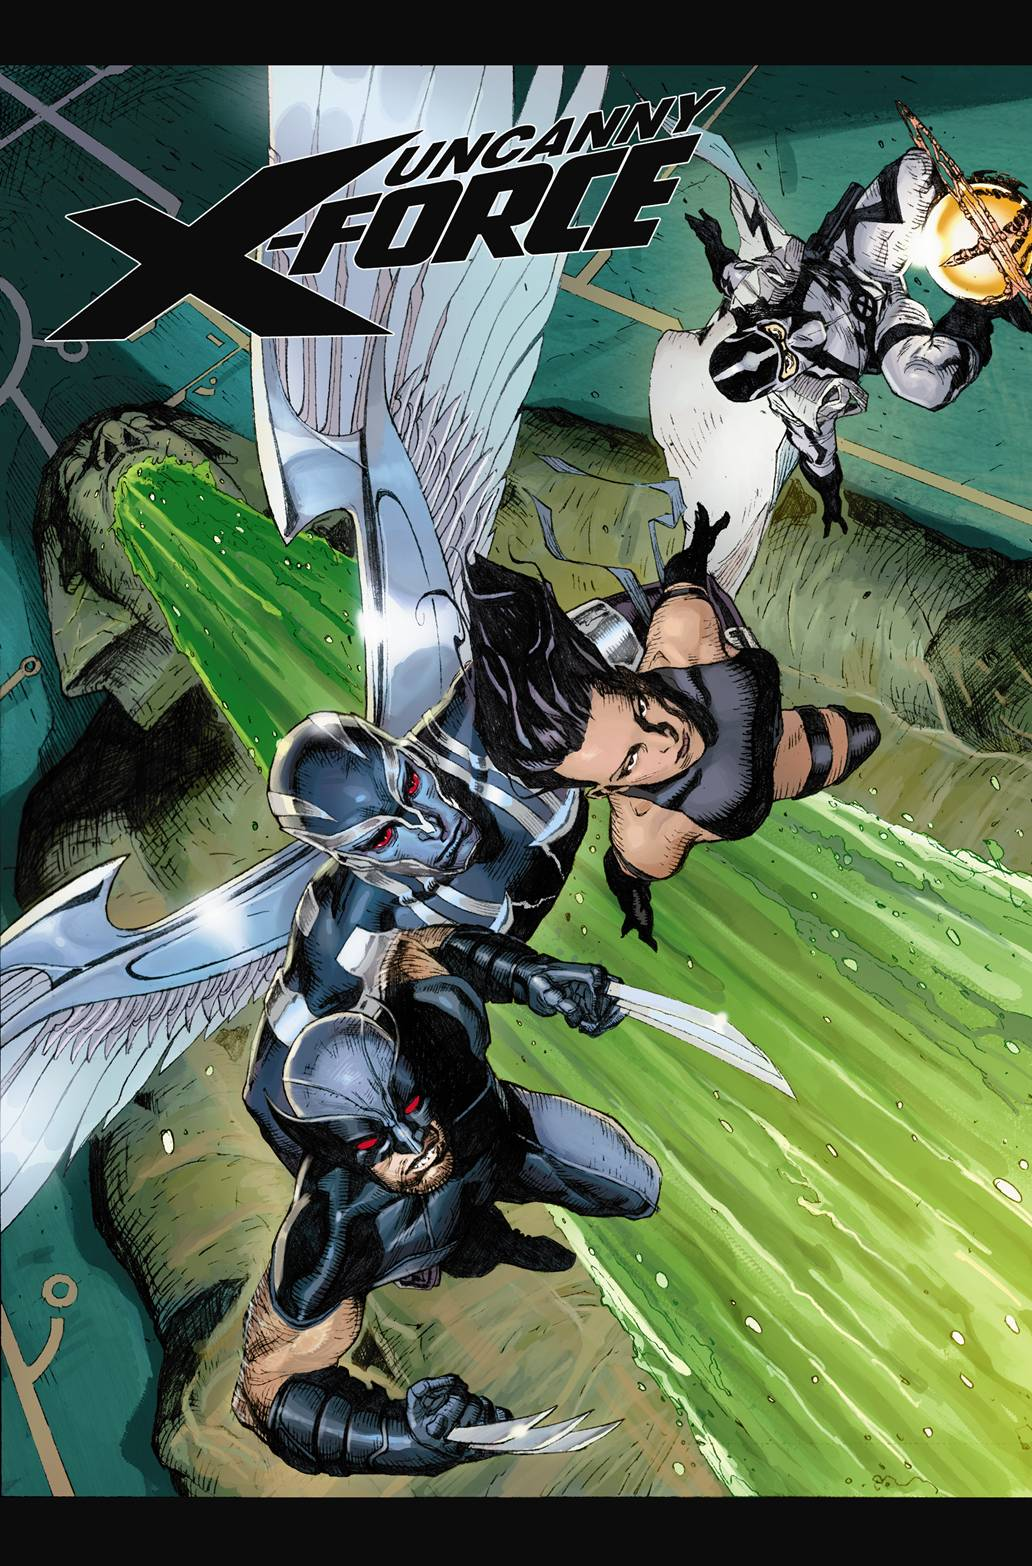 Uncanny X-Force (2010) #1 (2ND PRINTING VARIANT)